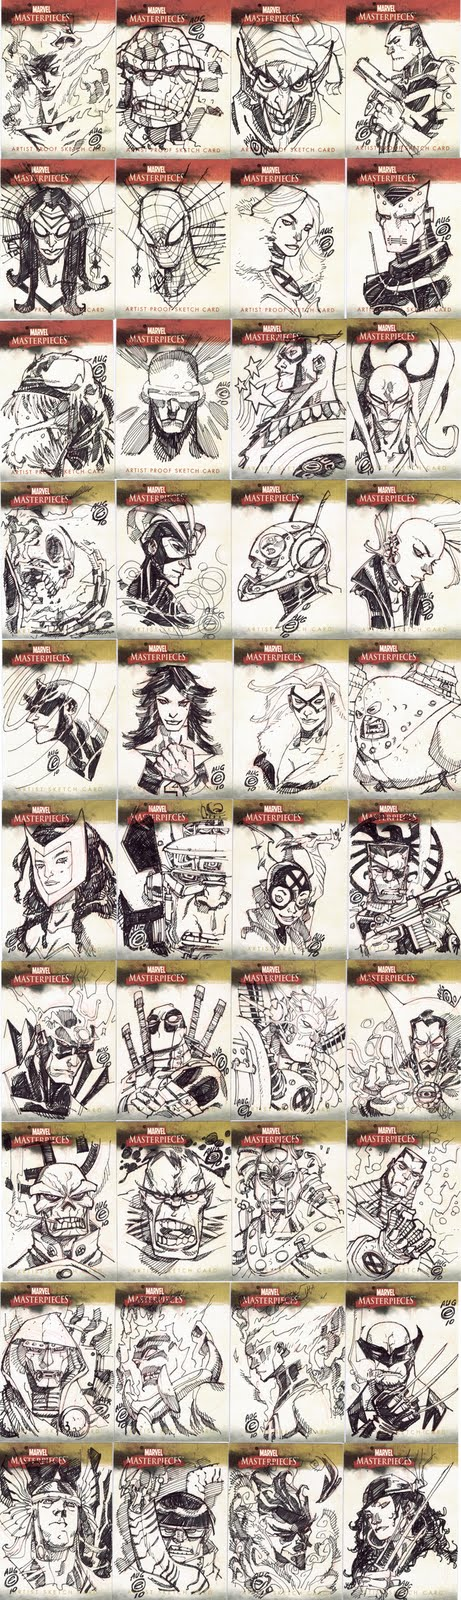 MARVEL MASTERPIECE SKETCHCARDS by EricCanete